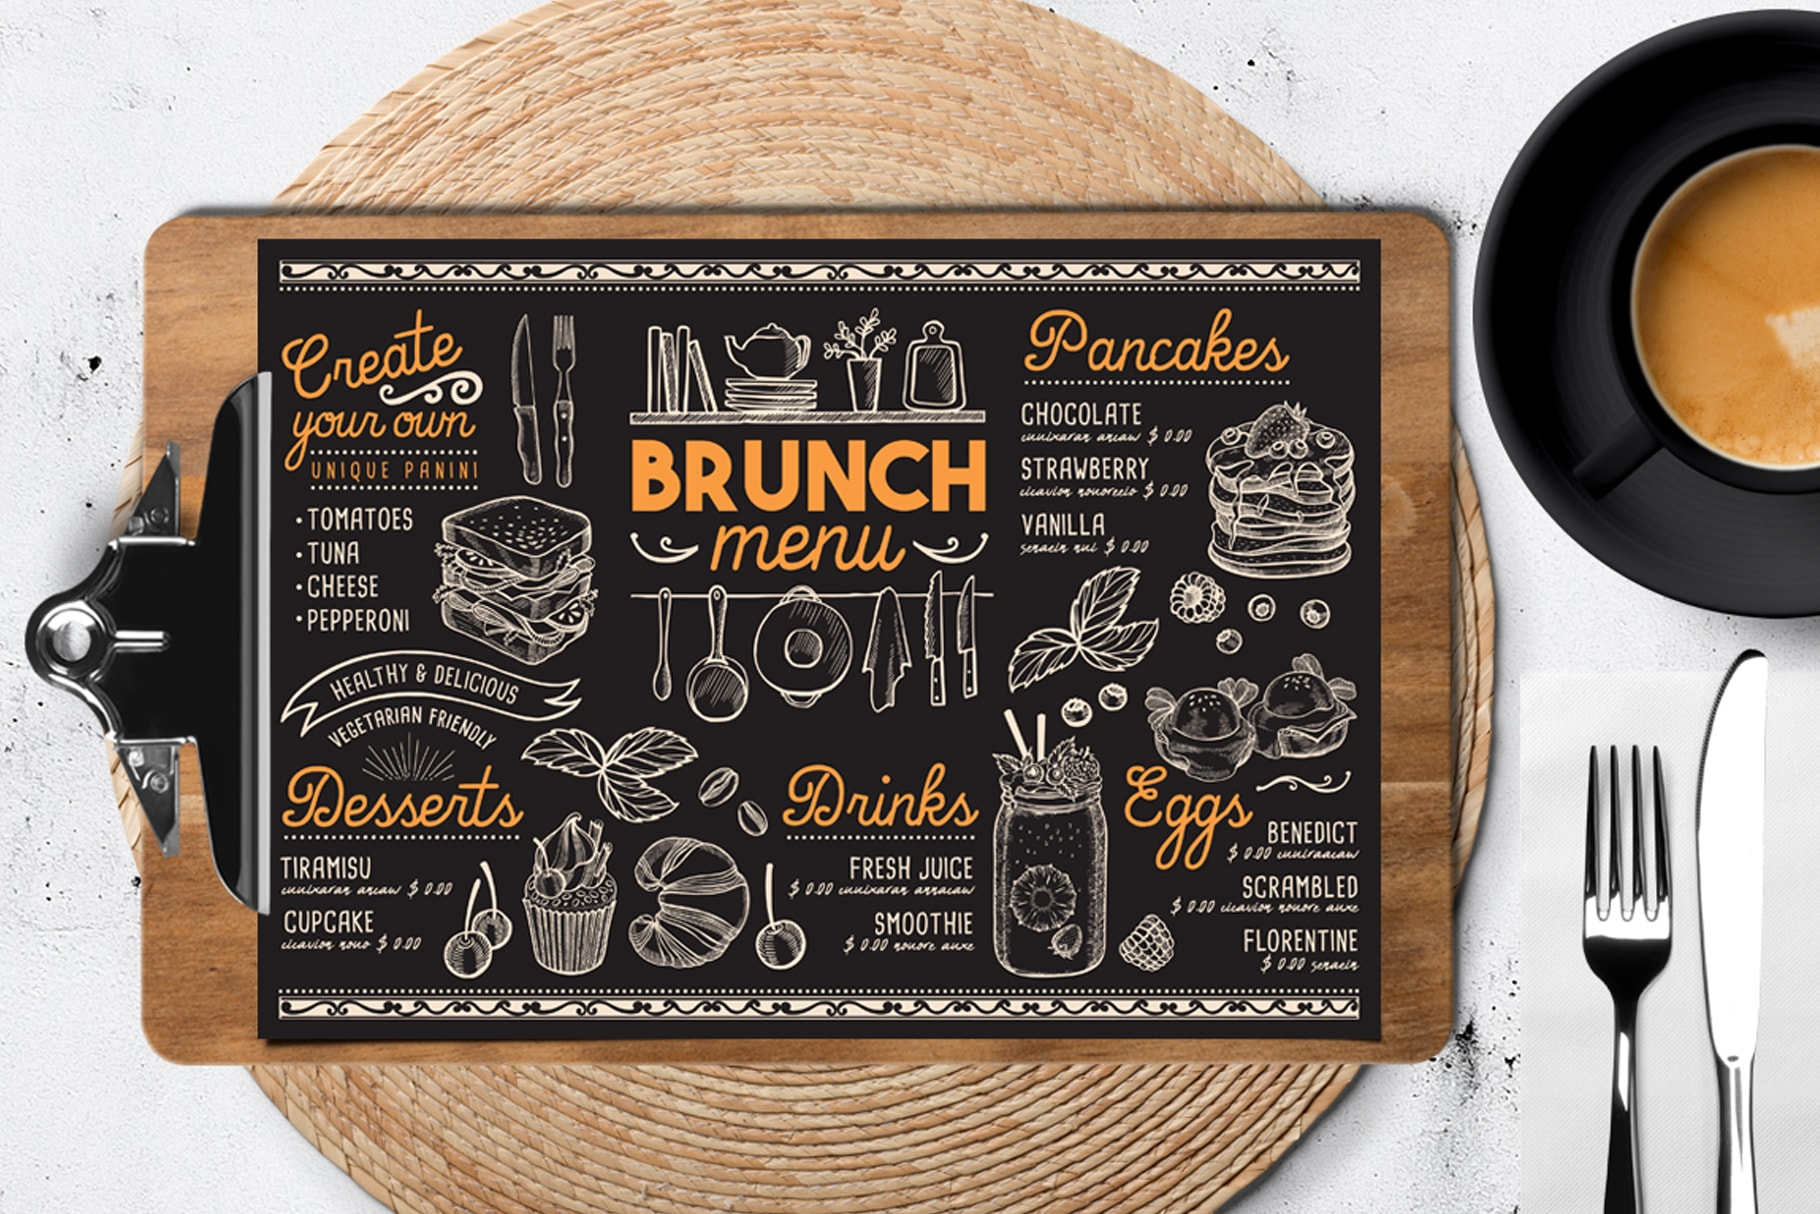 brunch coffee menu template design for restaurant with hand drawn illustrations